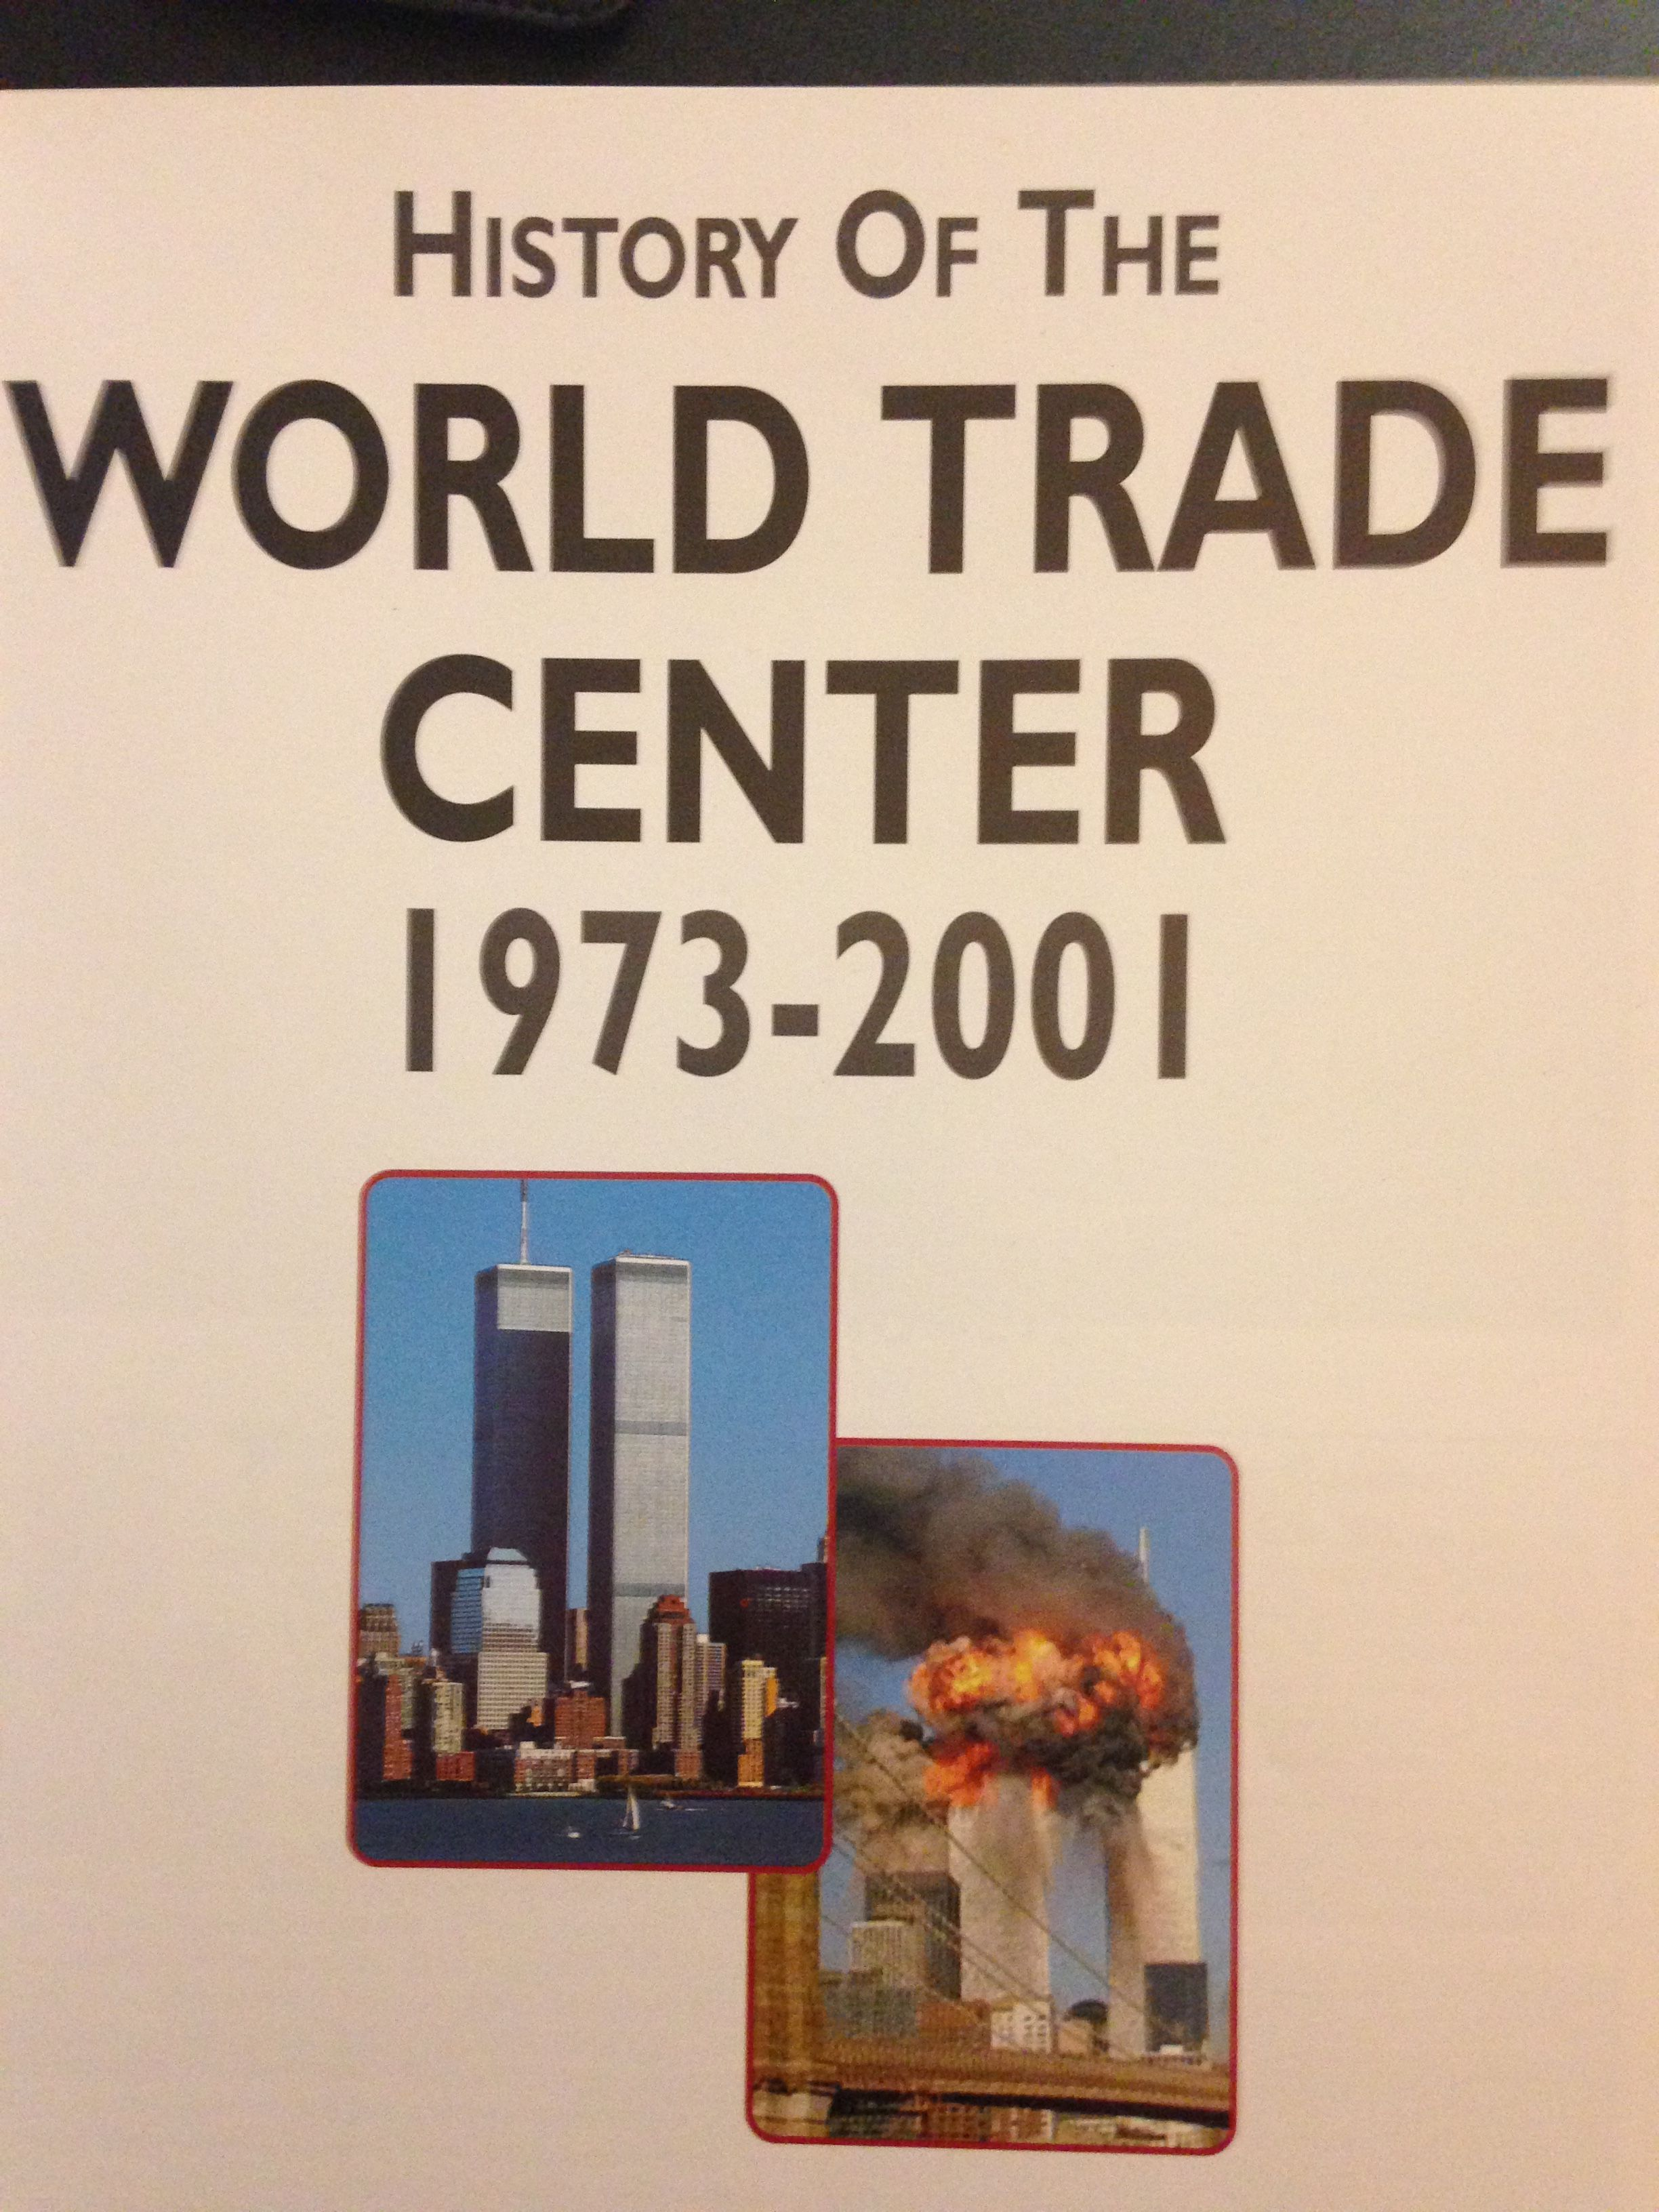 History of the World Trade Center